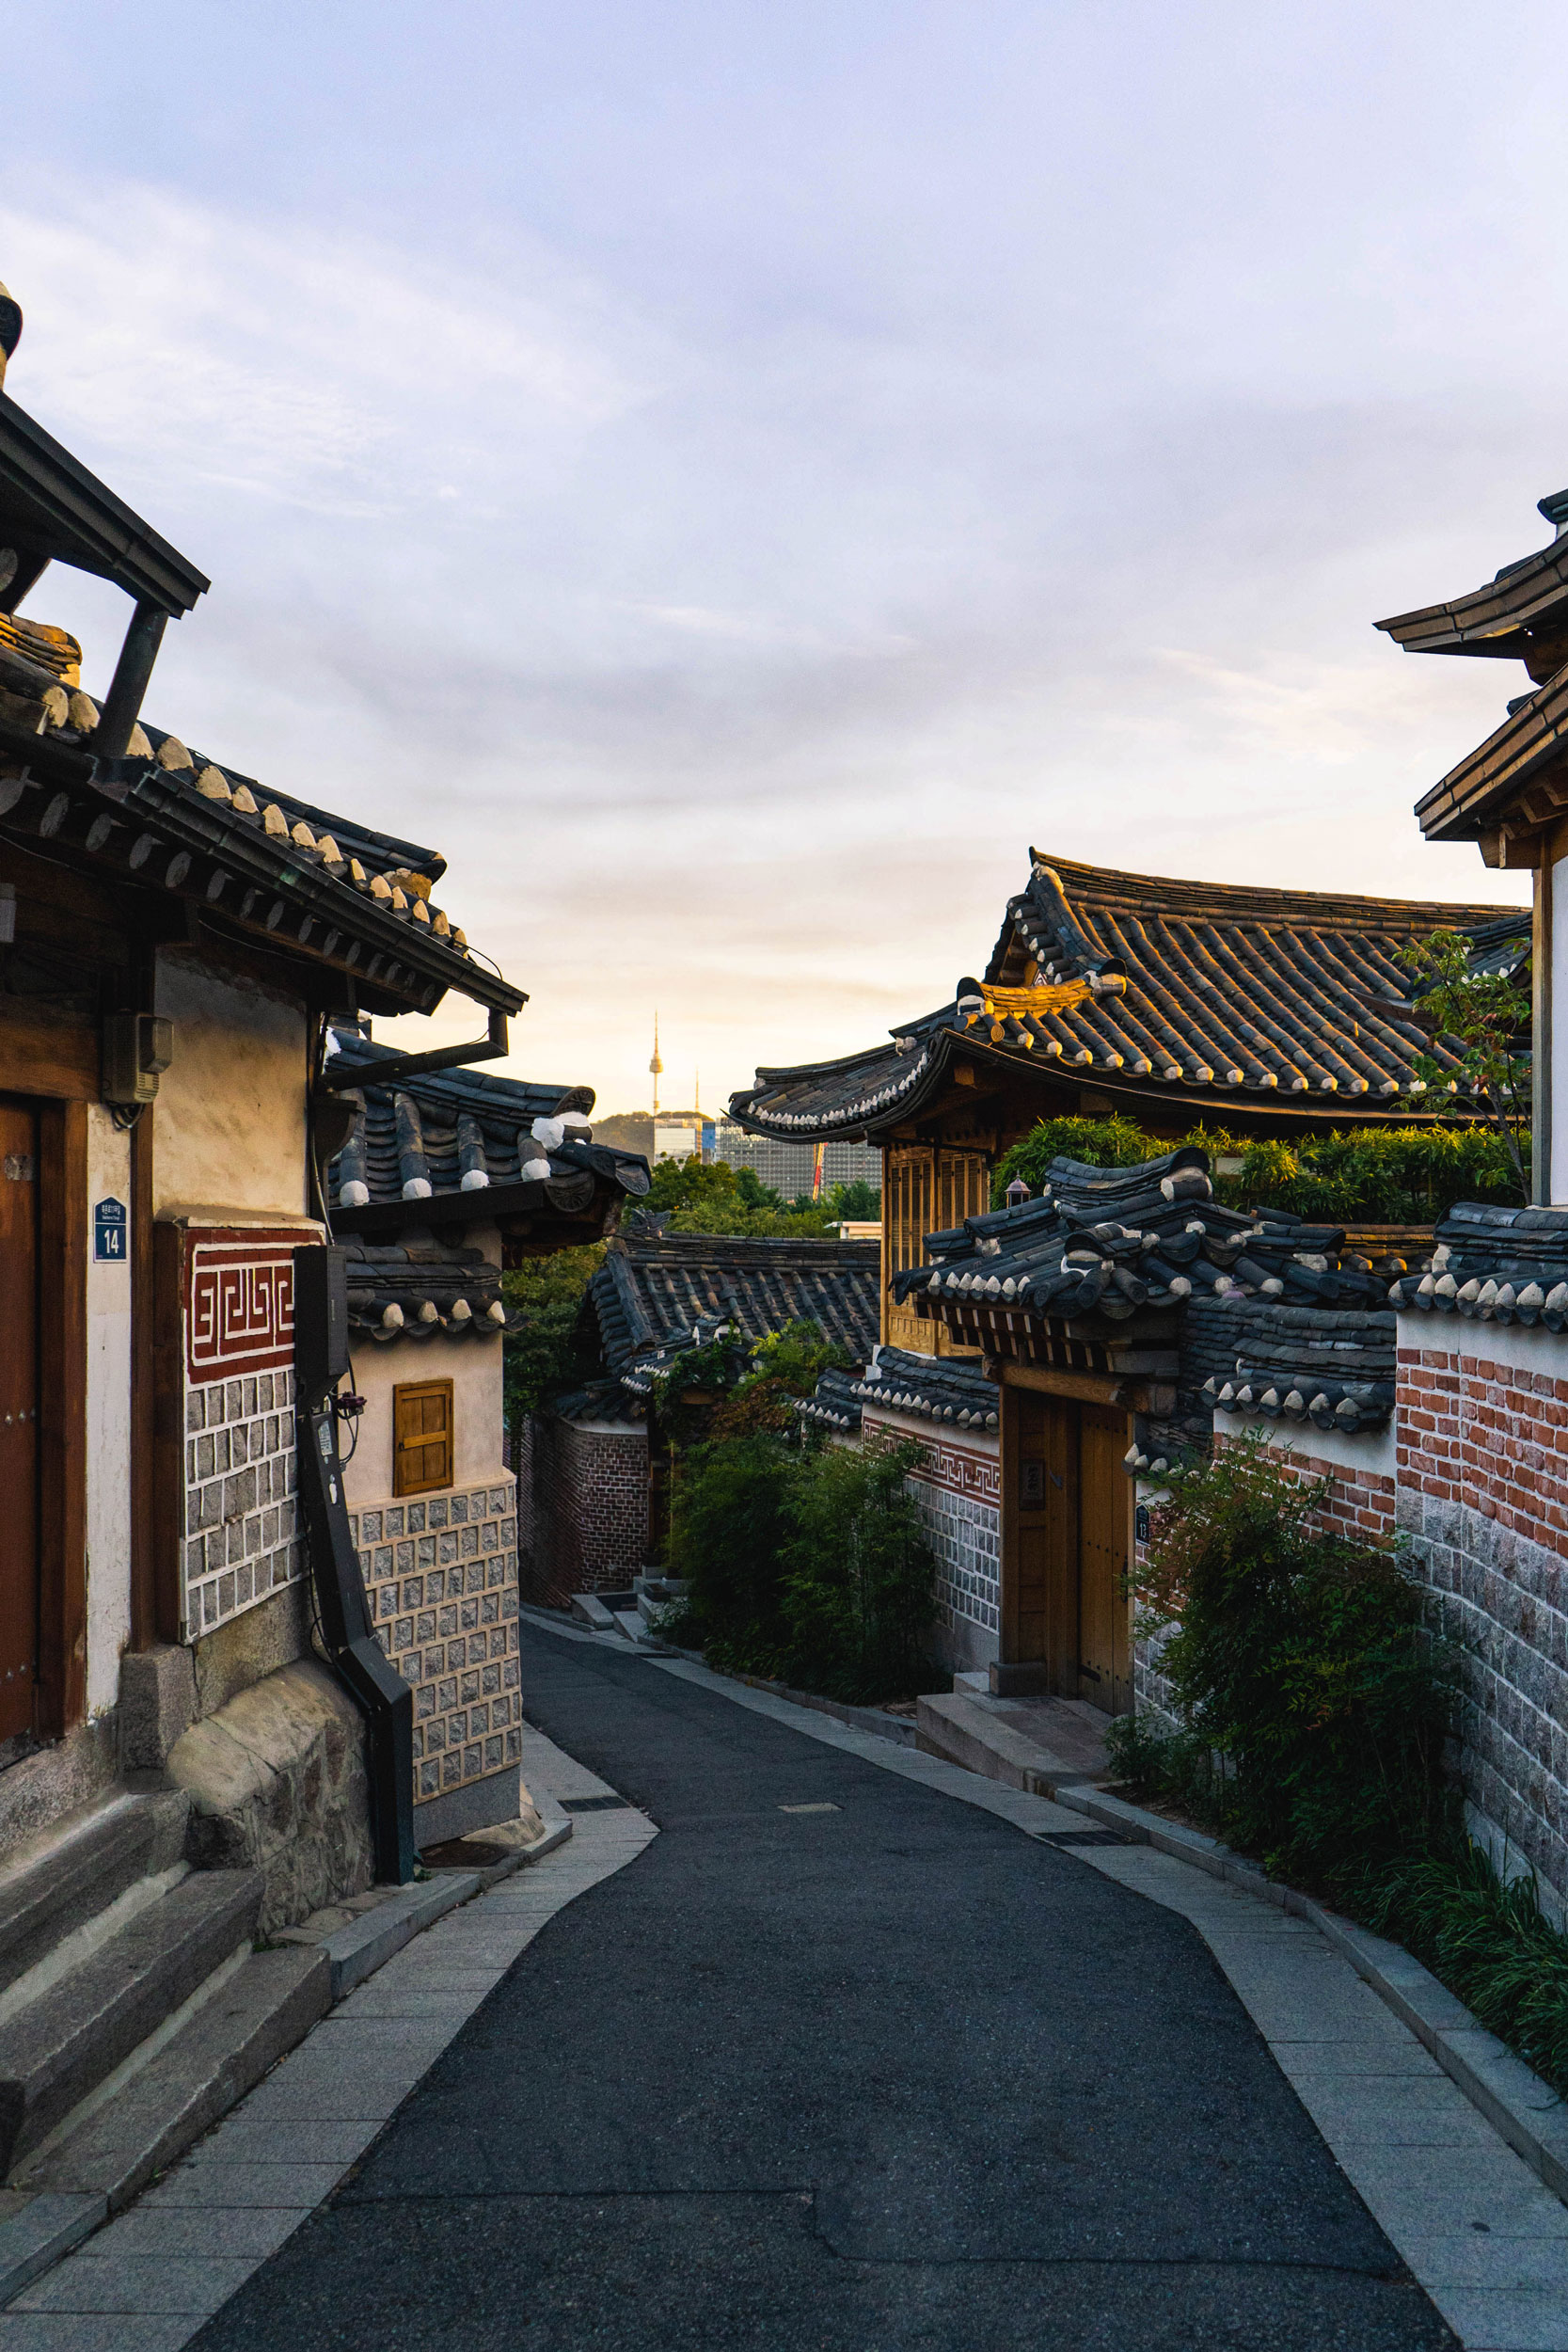 Bukchon Hanok Village in the late afternoon with Seoul Tower in the background